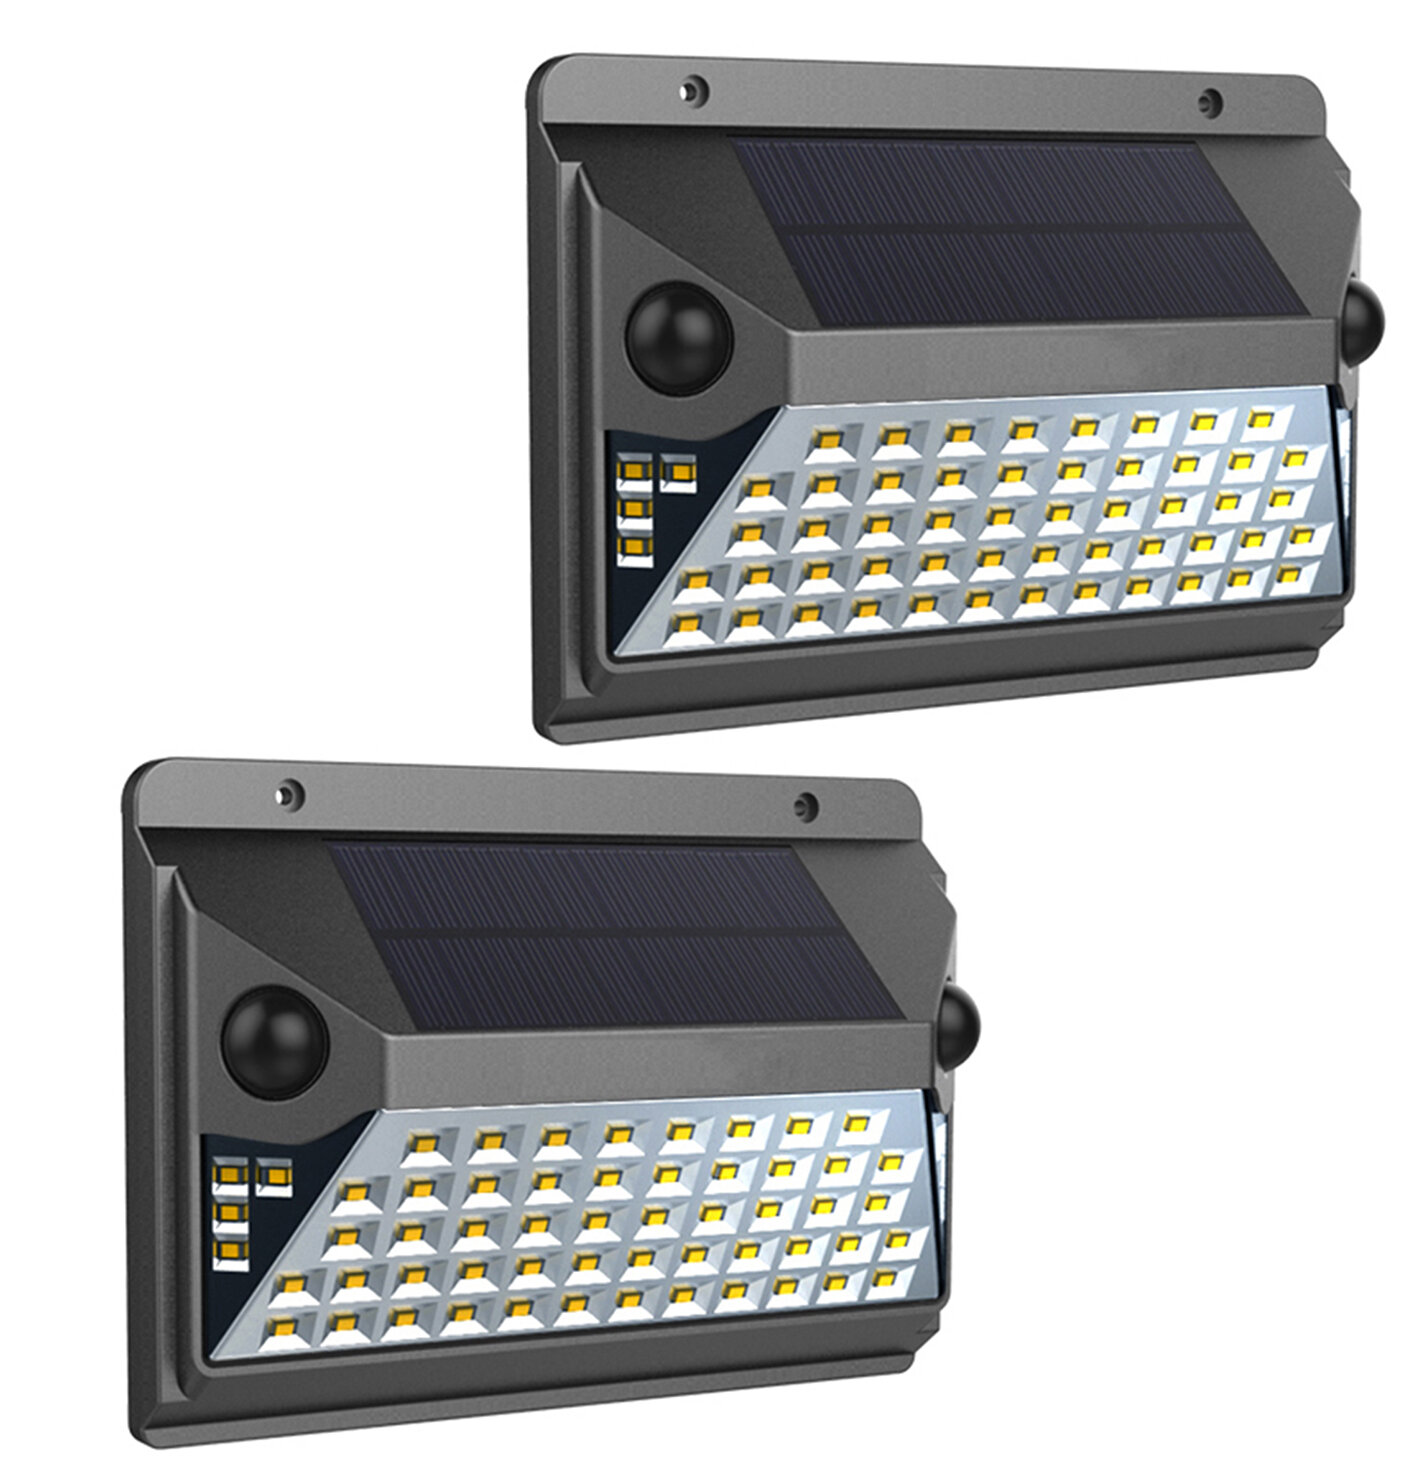 Westinghouse Lighting Intelligent 1000lm Dual Led Solar Power Outdoor Security Wall Pack With Motion Sensor Pack Of 2 Reviews Wayfair